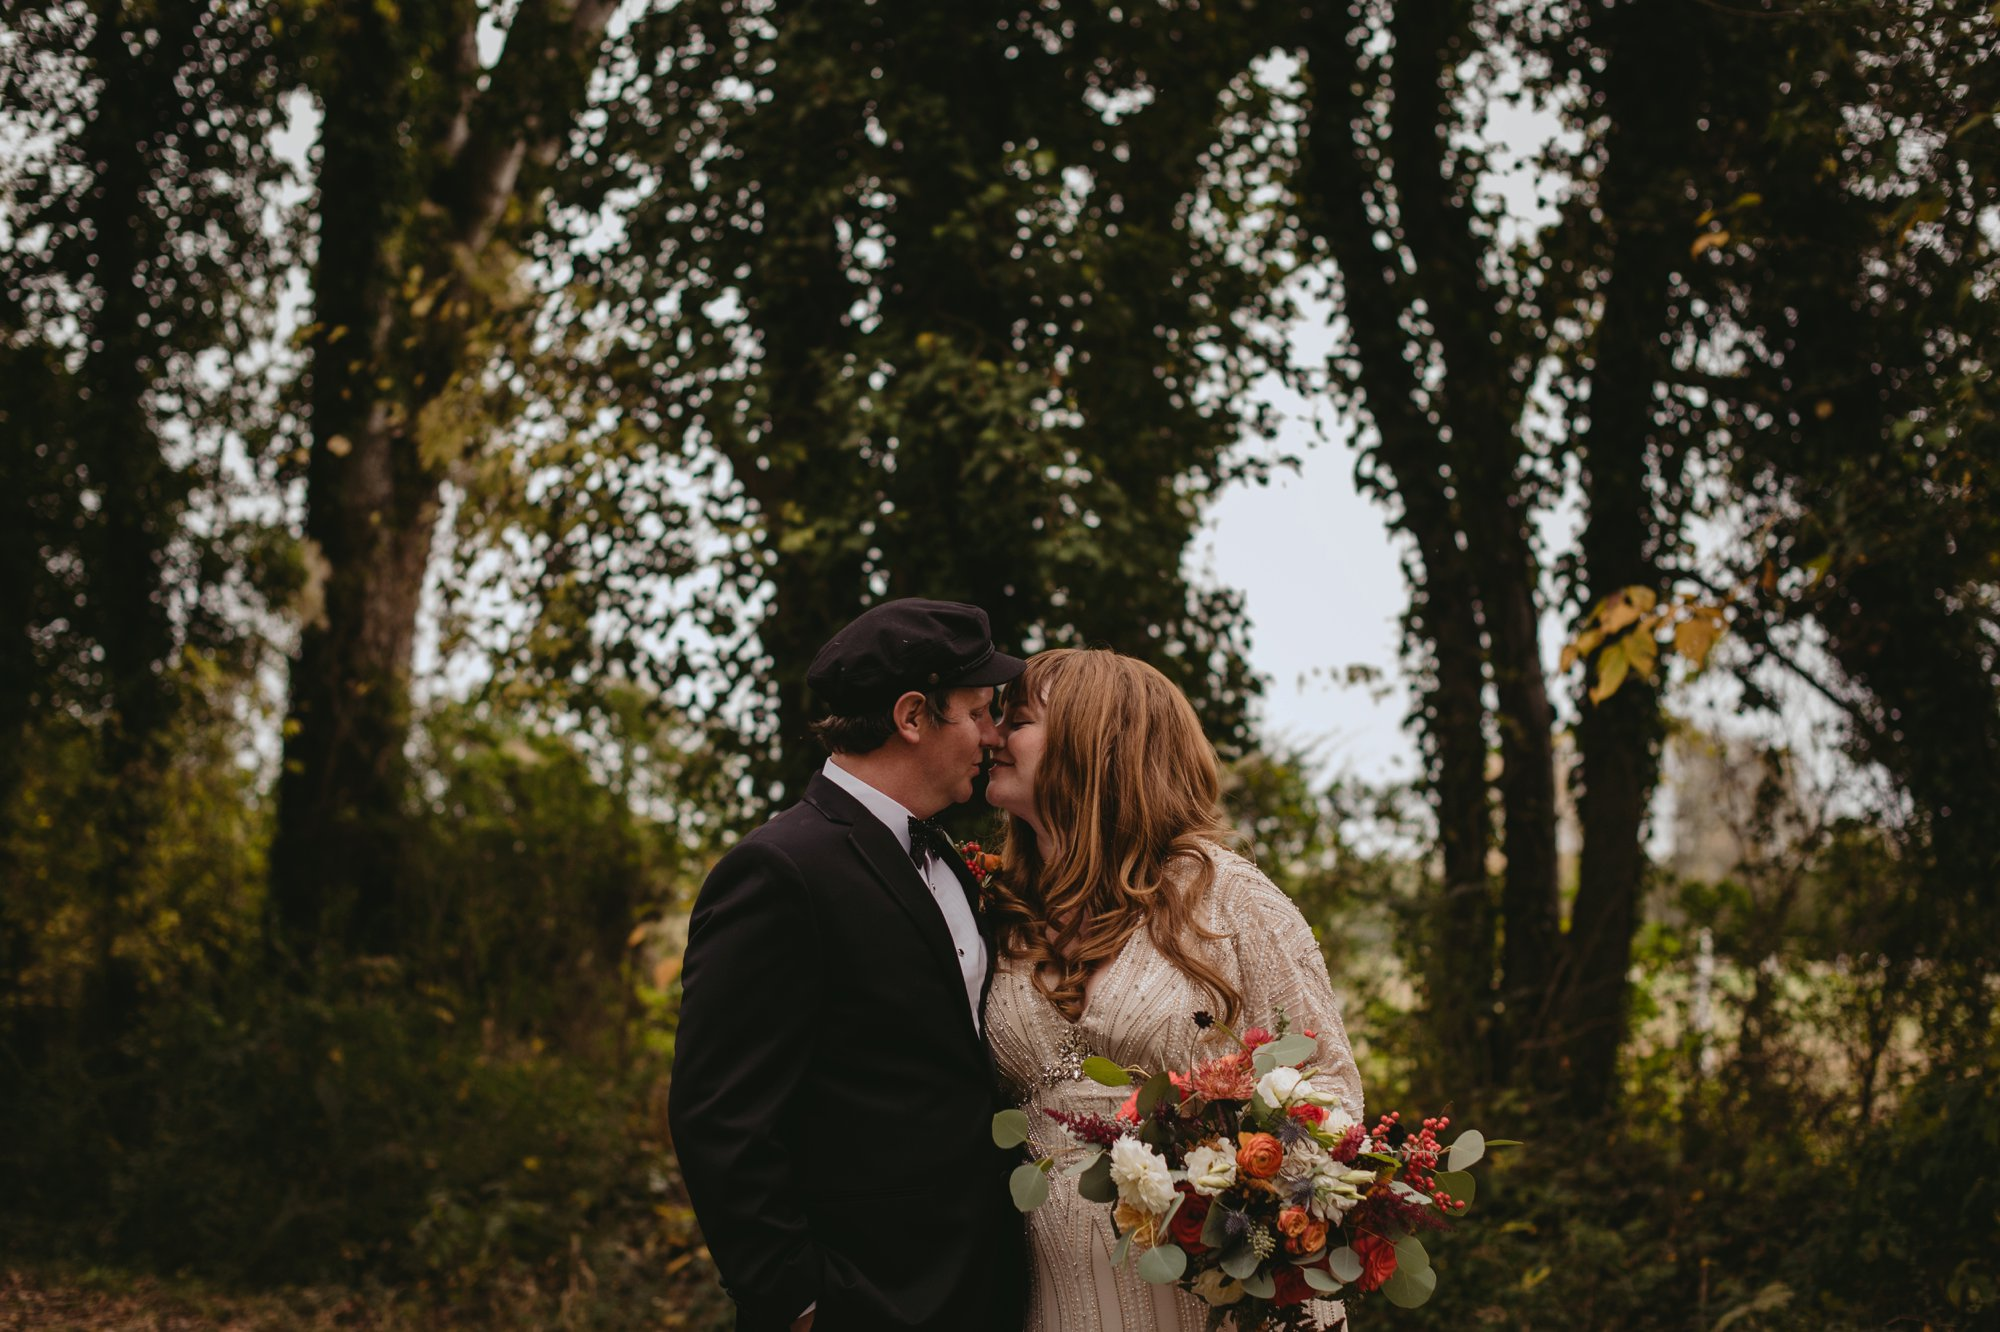 Autumn Richmond VA winery wedding at Upper Shirley Vineyards with lush garden florals and old Hollywood glamour portrait